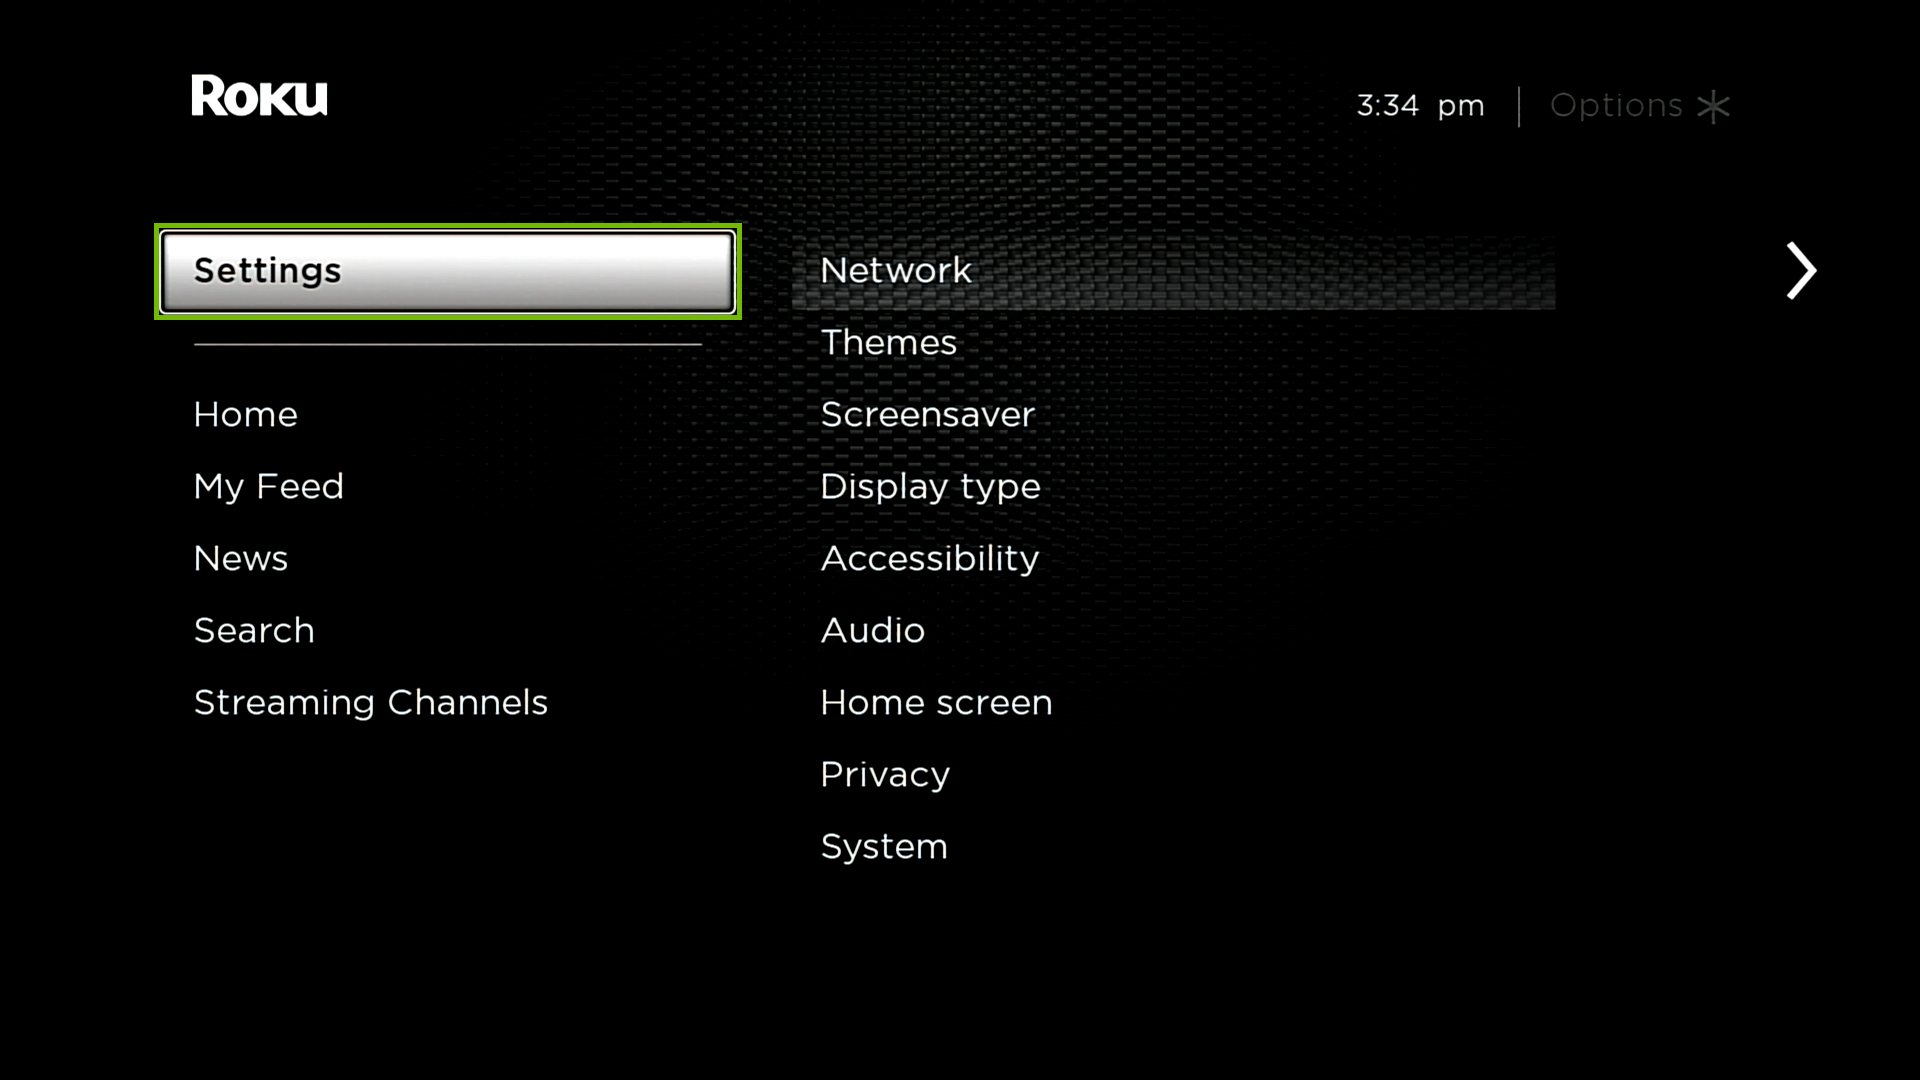 Roku Home screen with Settings highlighted.